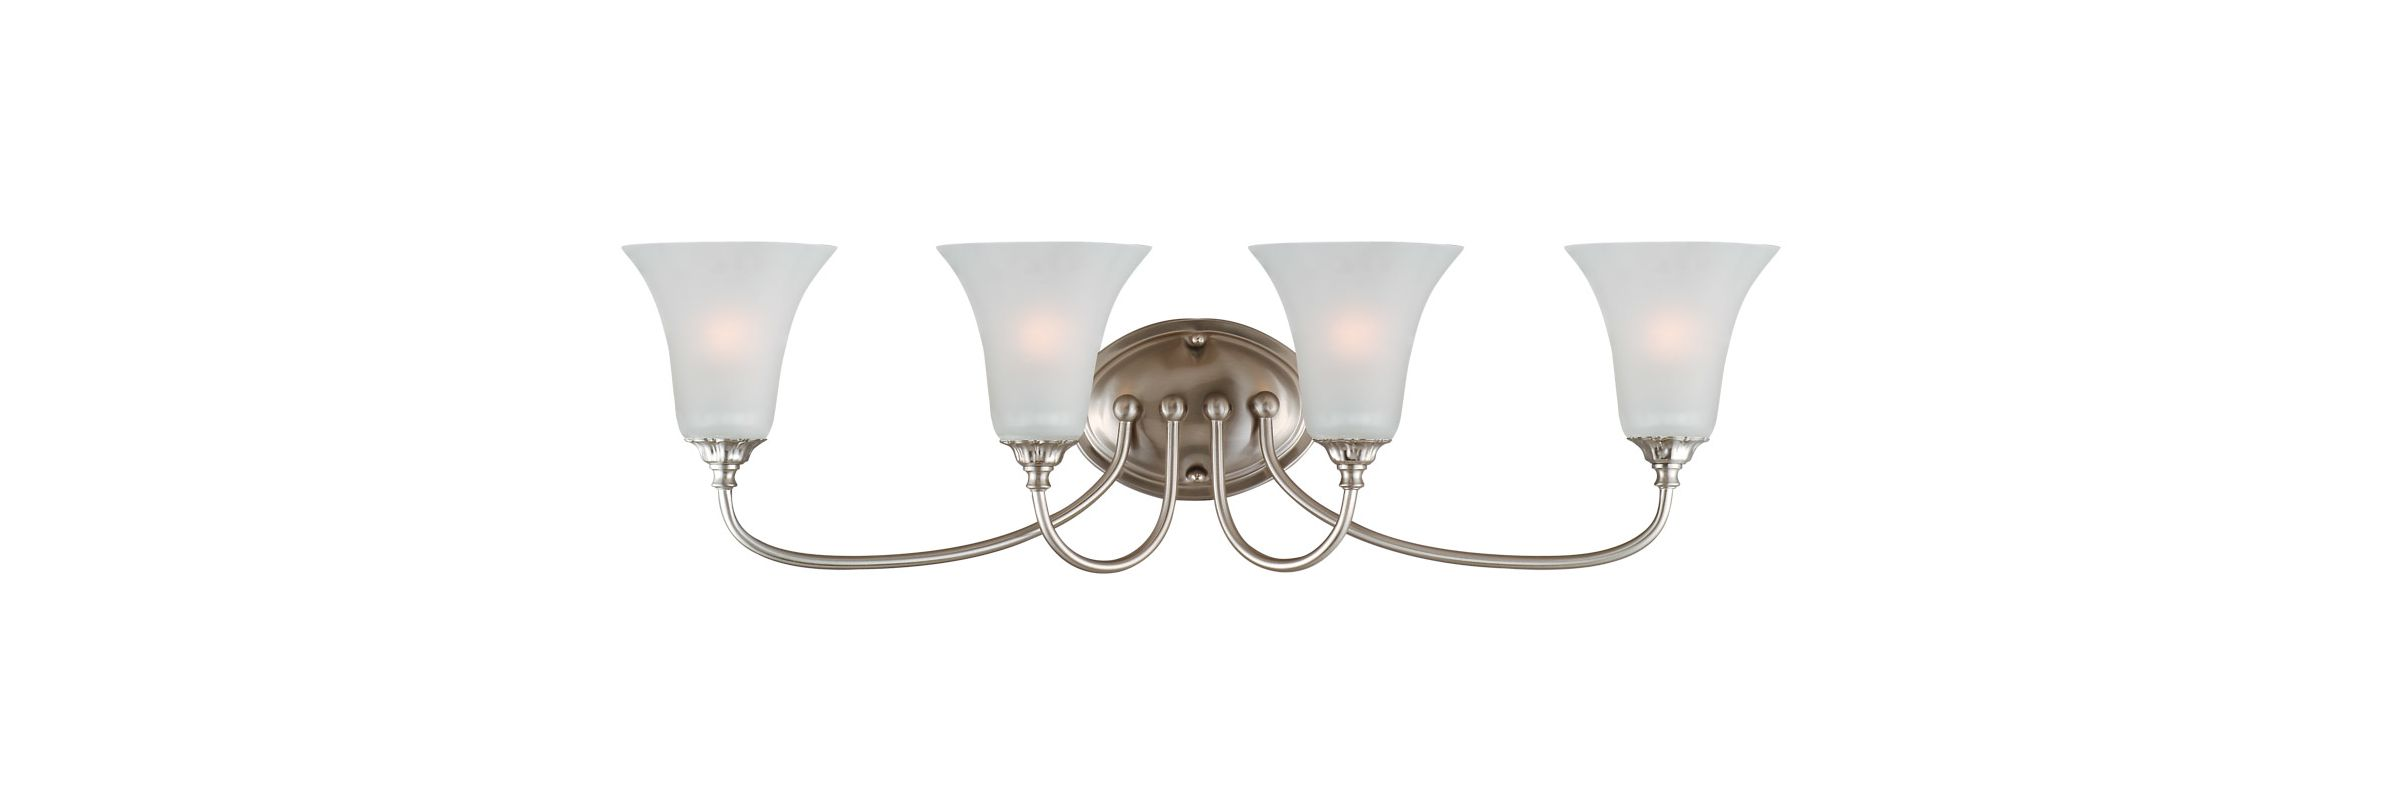 Vanity Lights Up Or Down : Design House 514737 Satin Nickel Hyde Traditional / Classic 4 Light Up or Down Lighting Bathroom ...